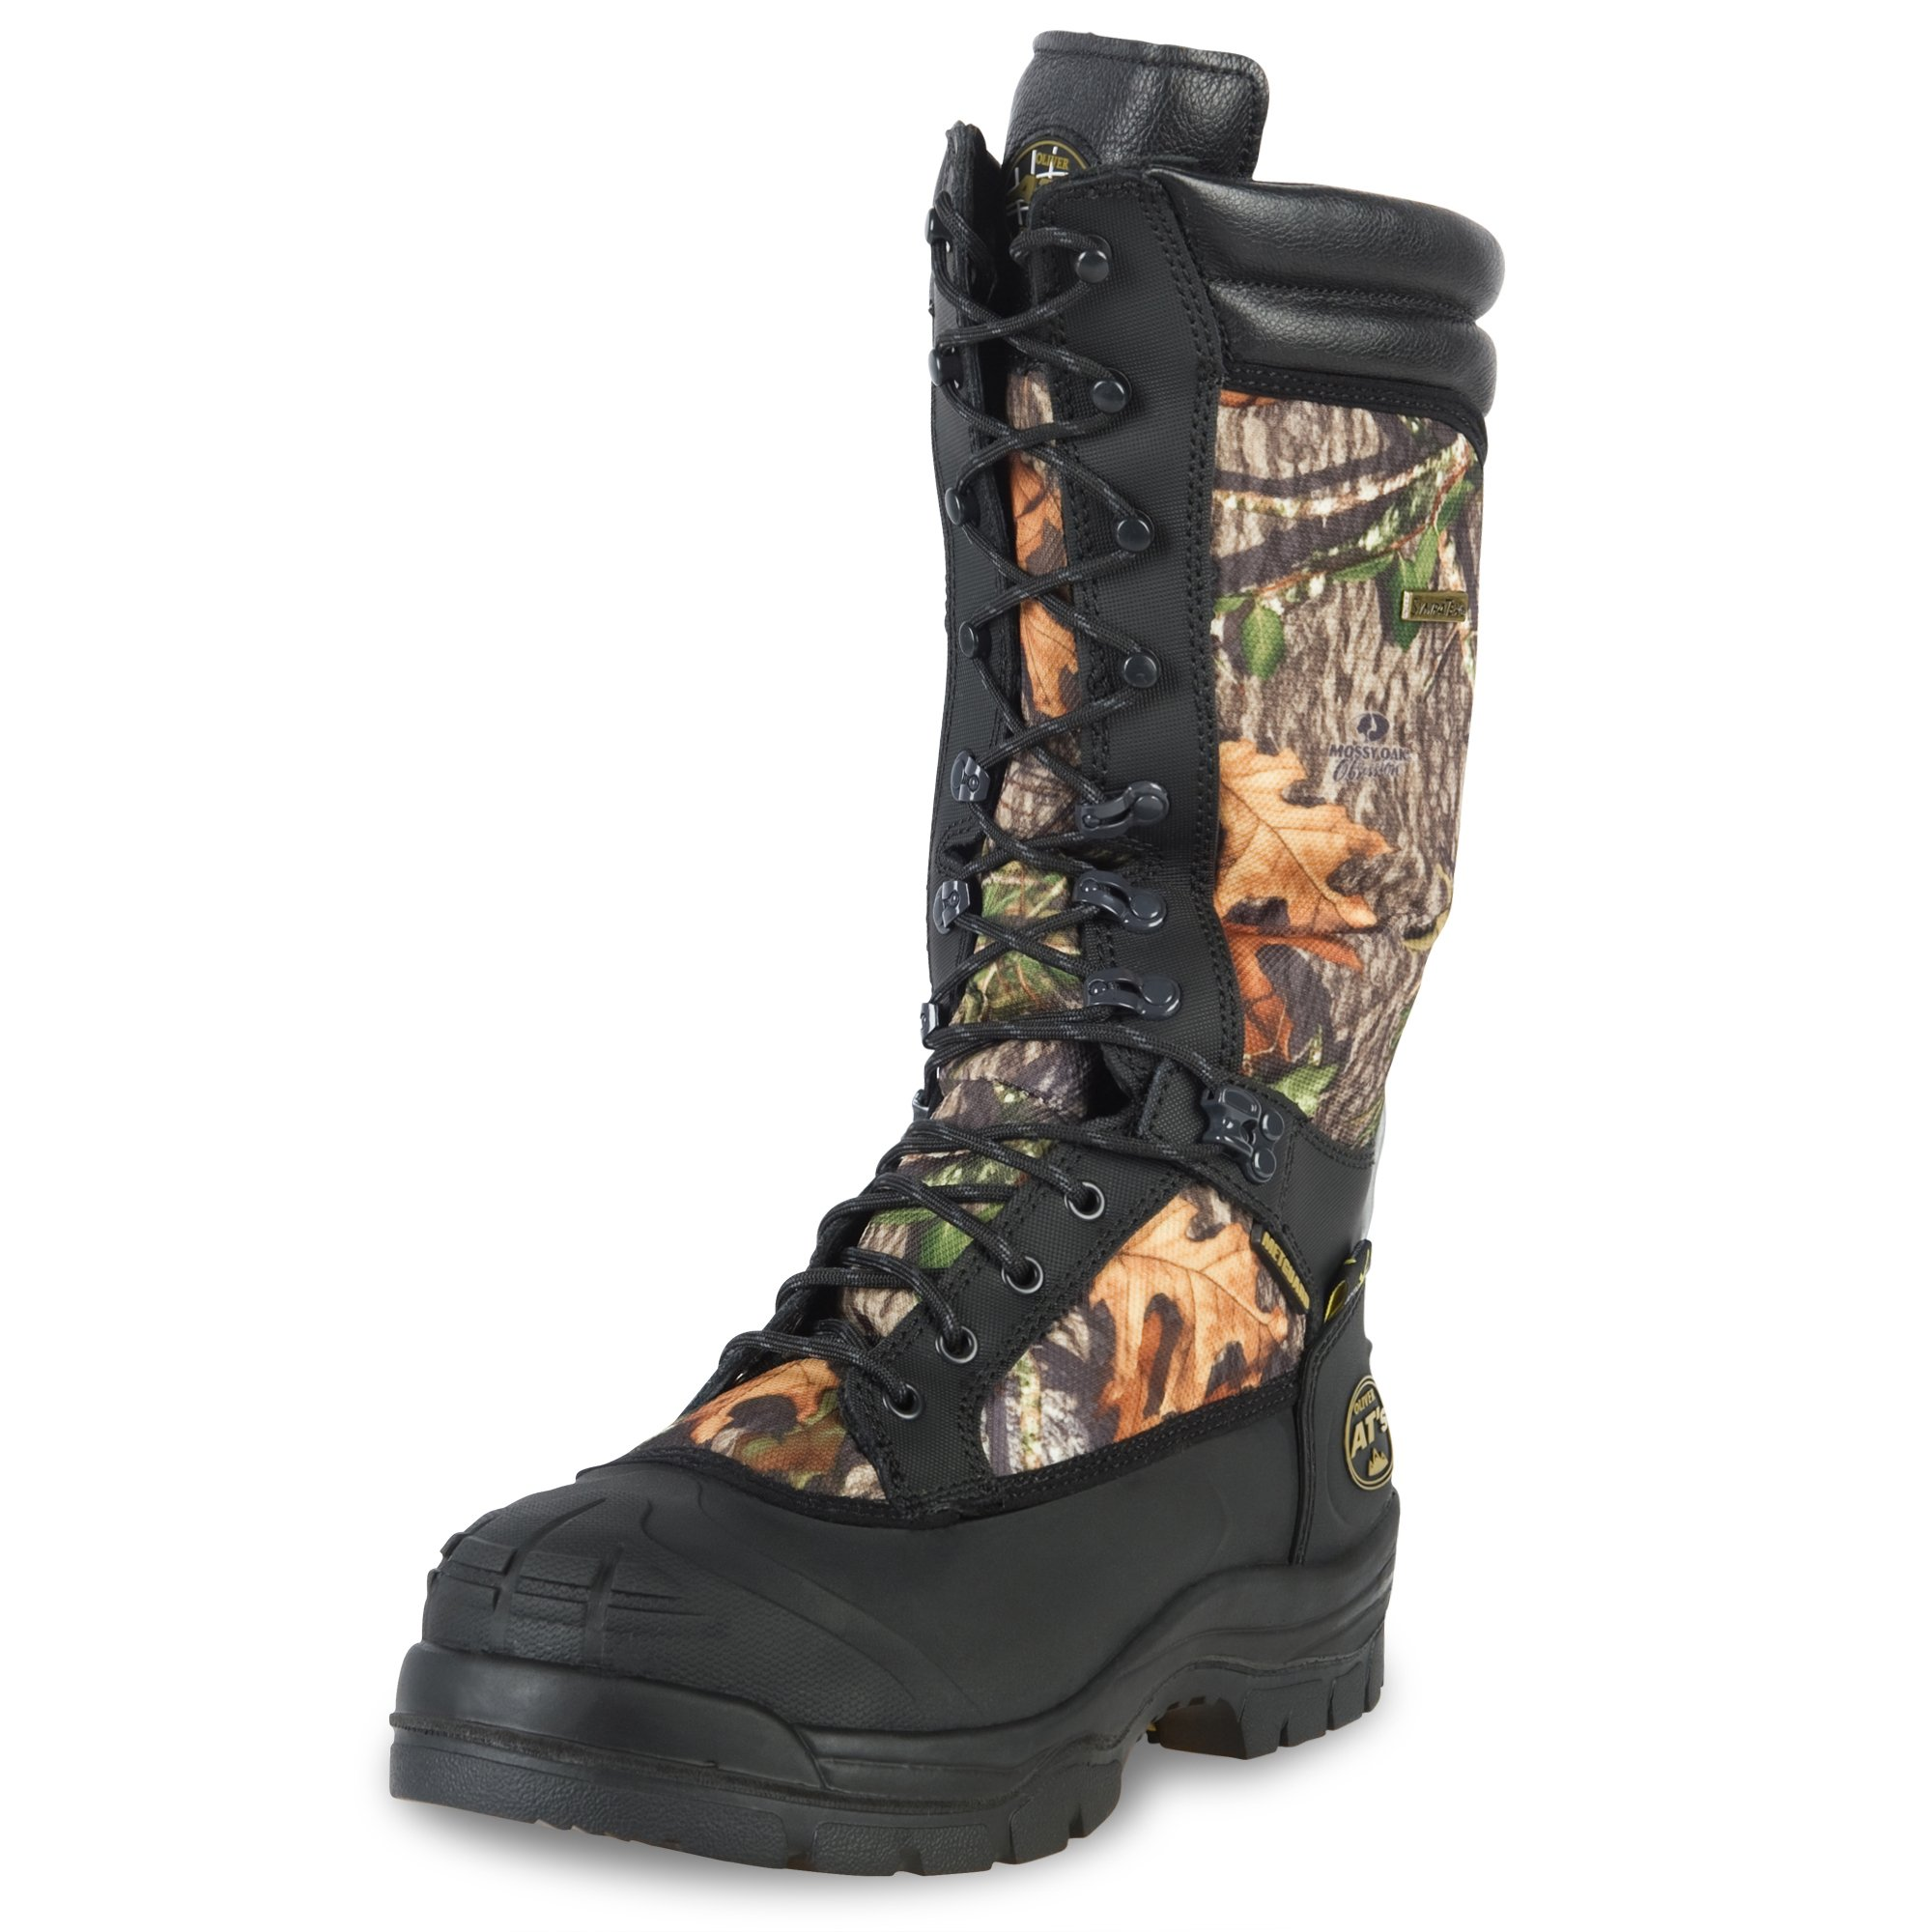 Oliver 65 Series 14'' Leather Puncture-Resistant Waterproof Steel Toe Men's Mining/Snake Boots with Metatarsal Guard, Mossy Oak (65698)